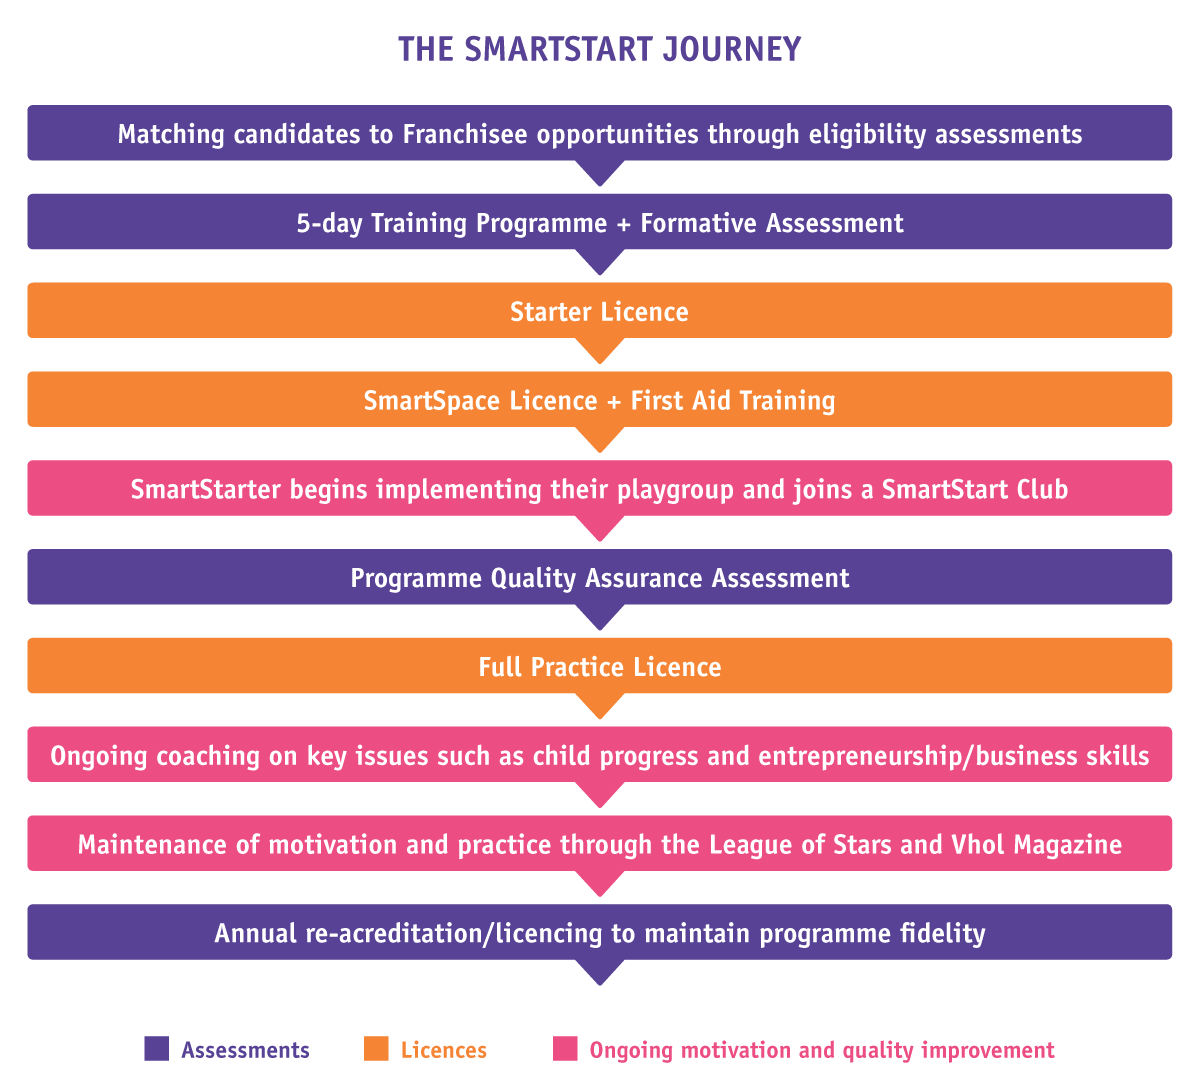 The SmartStart Journey Diagram